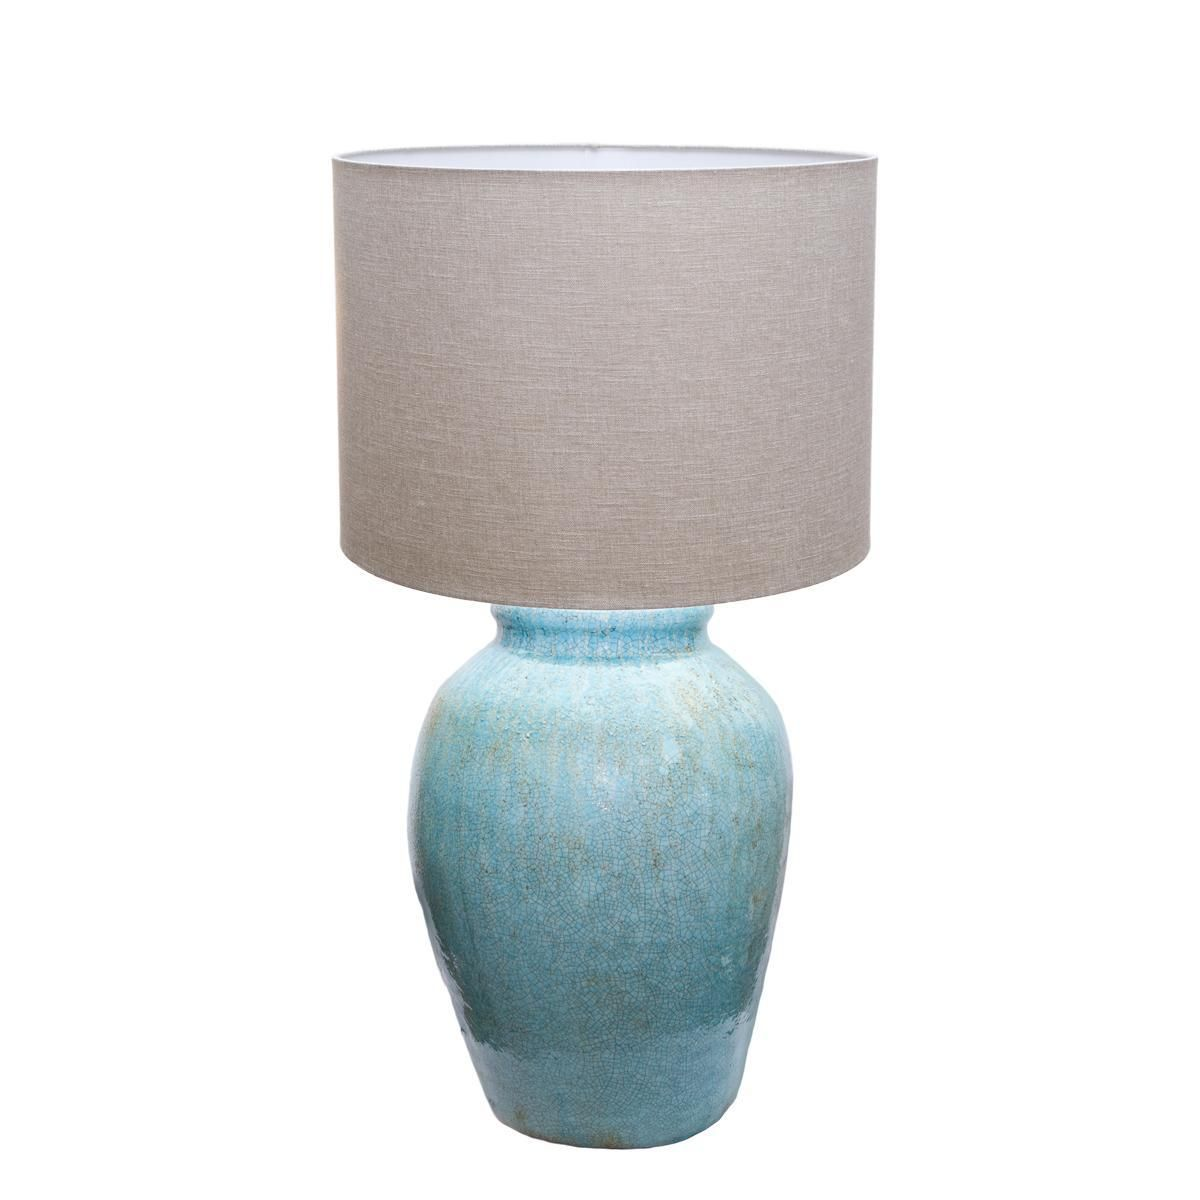 Tall Ceramic Turquoise Drip Table Lamp - Shades of Light